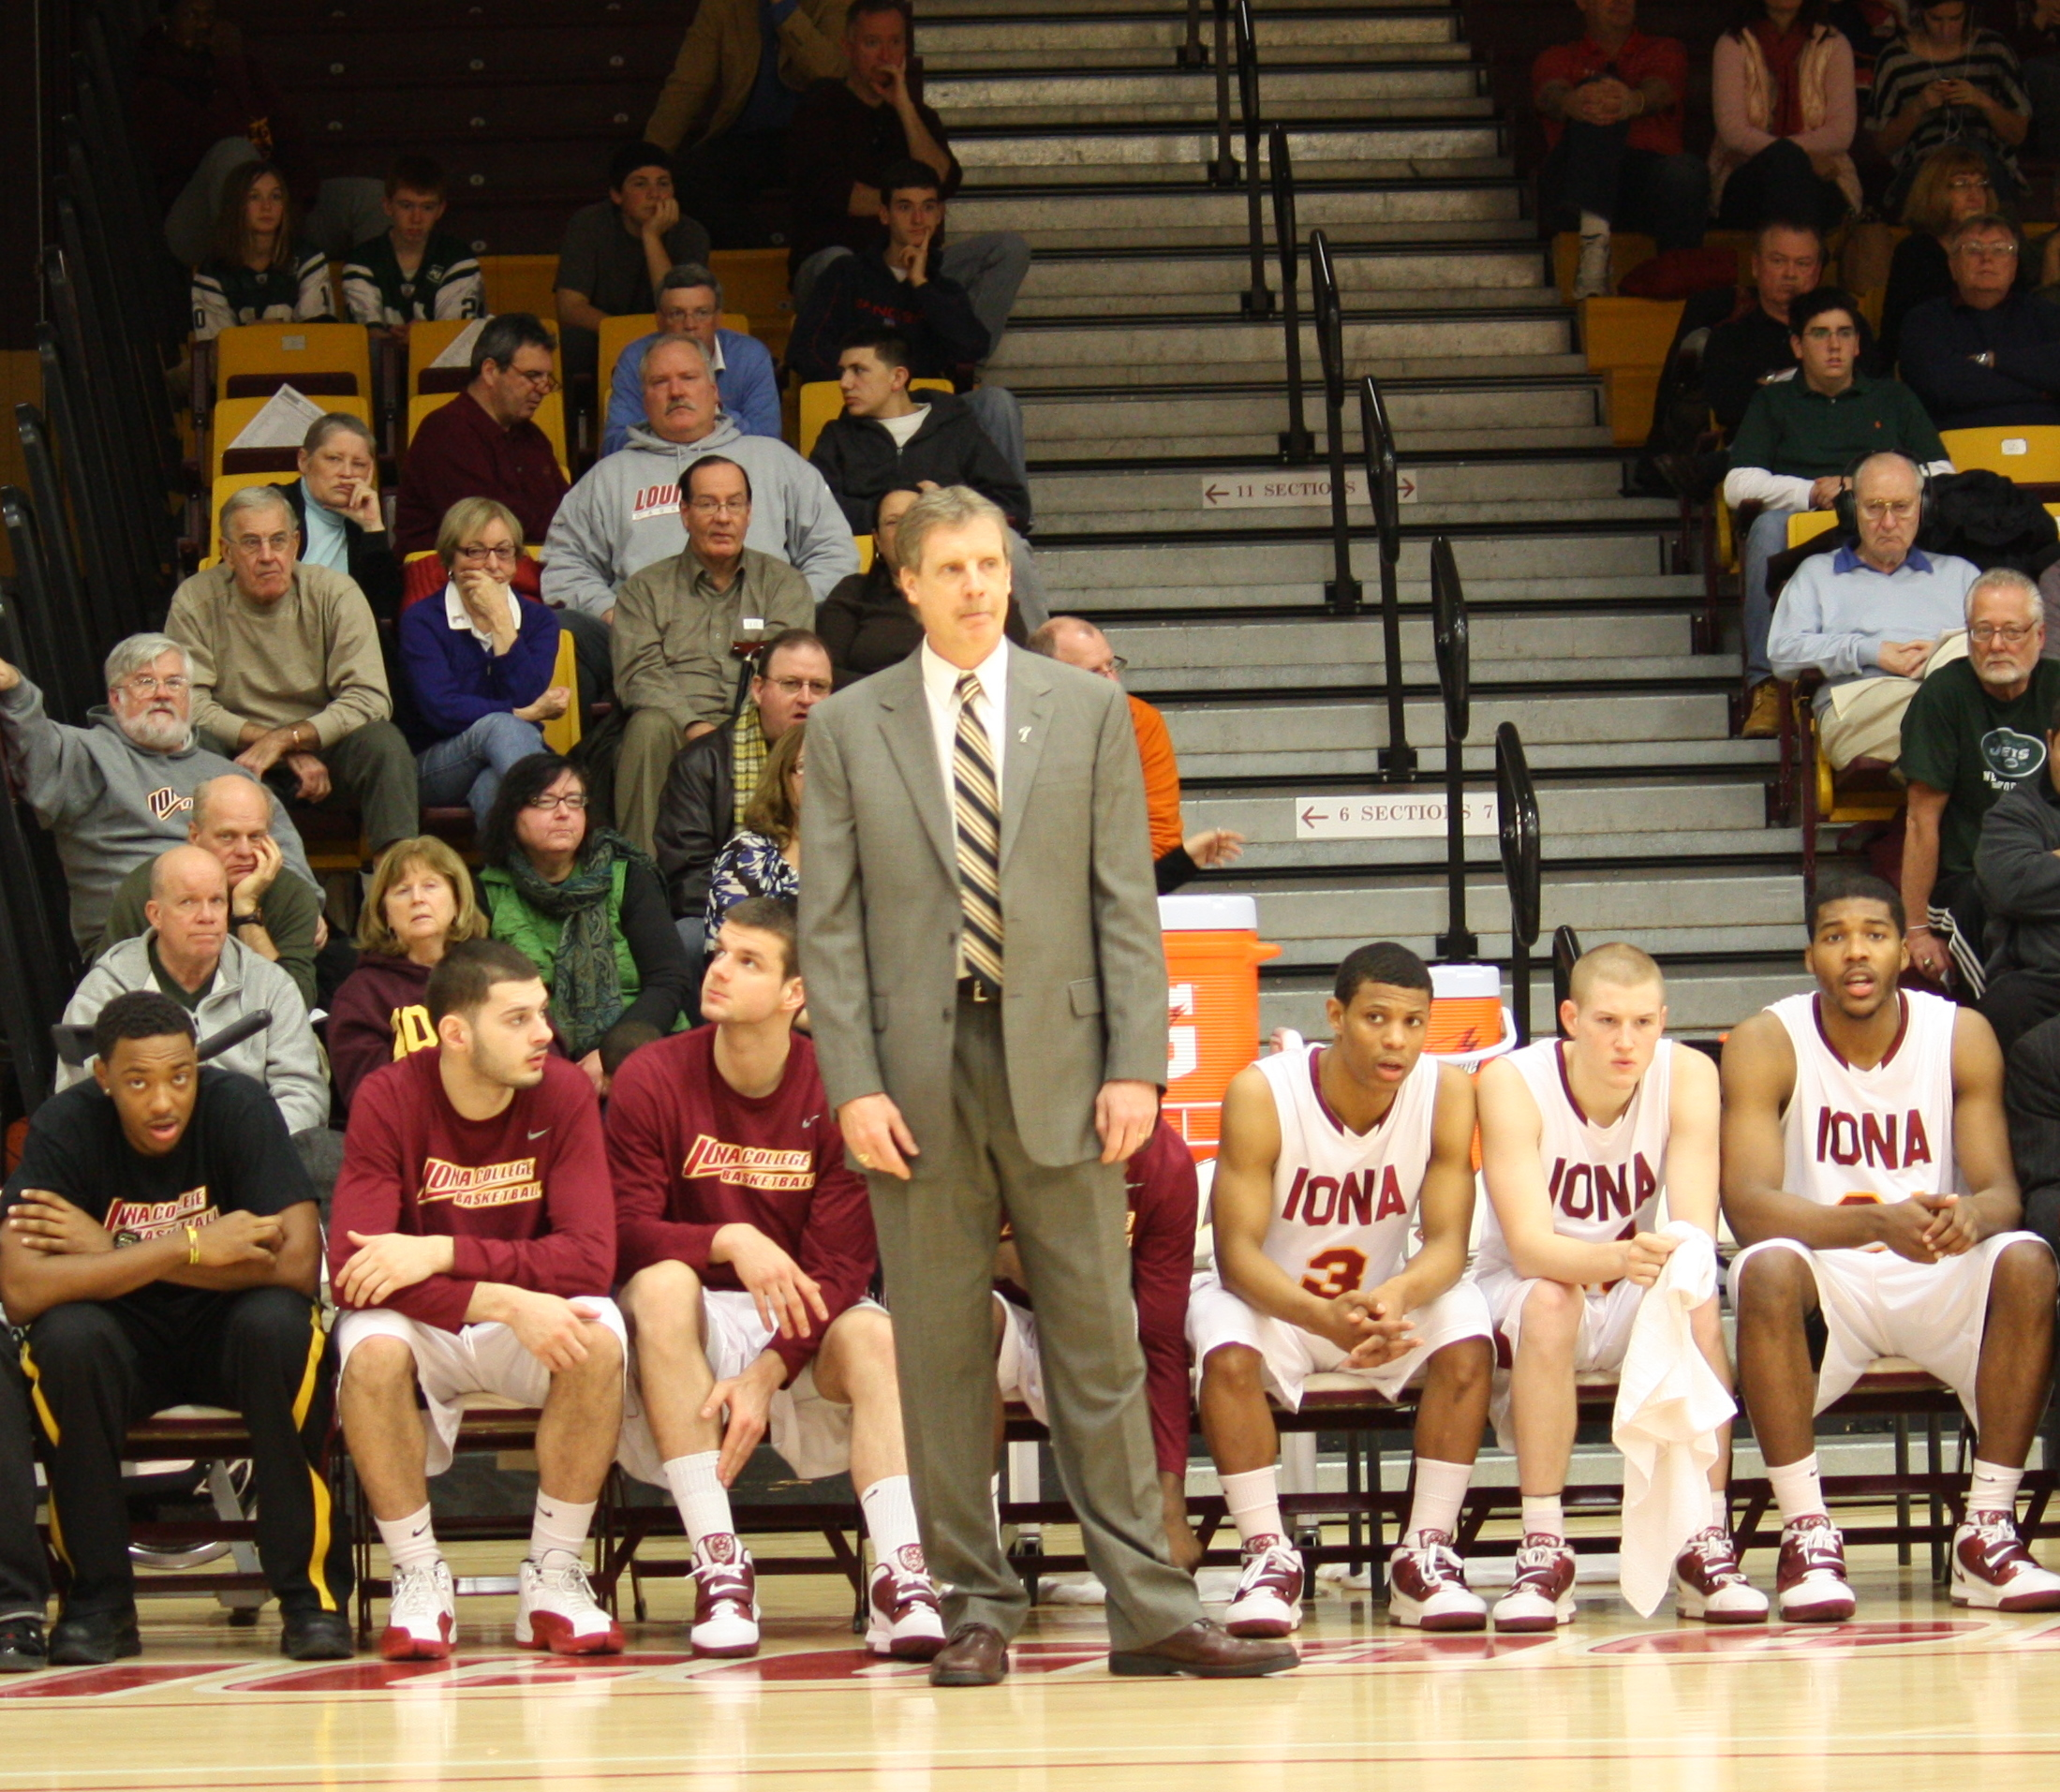 First Year Iona Coach Tim Cluess has stressed defense to his squad.